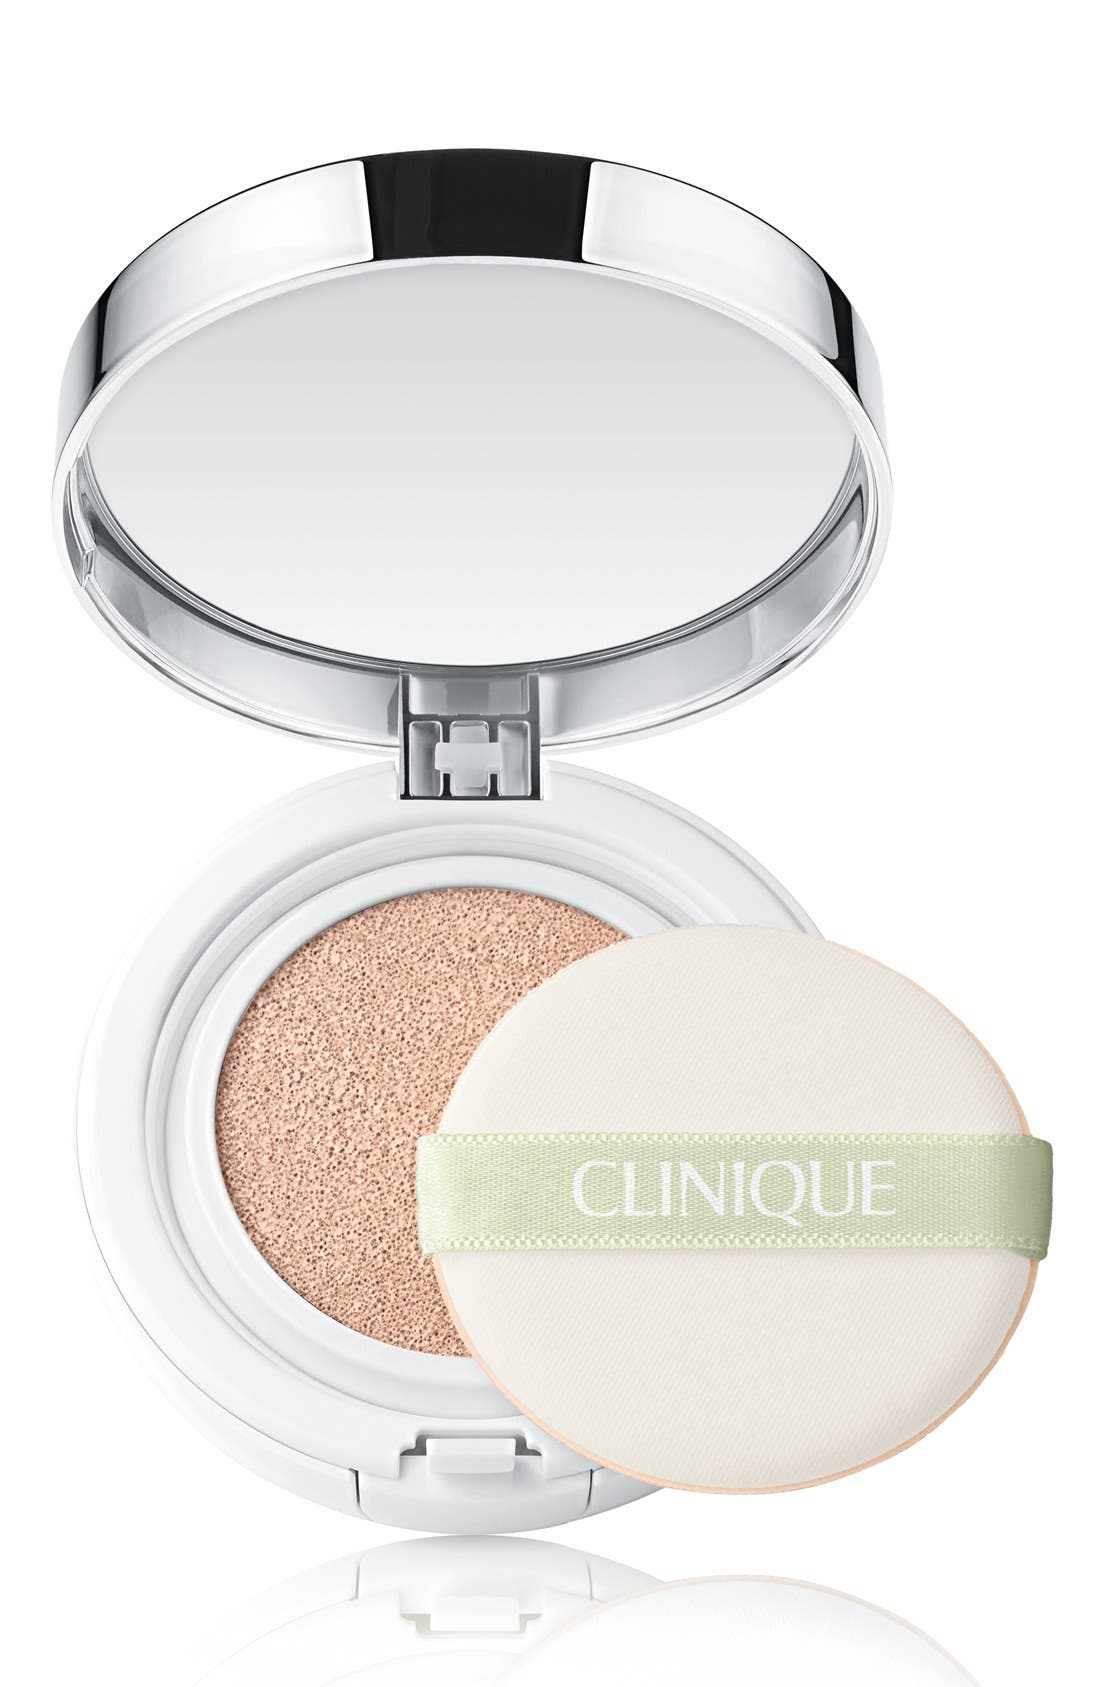 Clinique 'Super City Block' BB Cushion Compact Broad Spectrum SPF 50